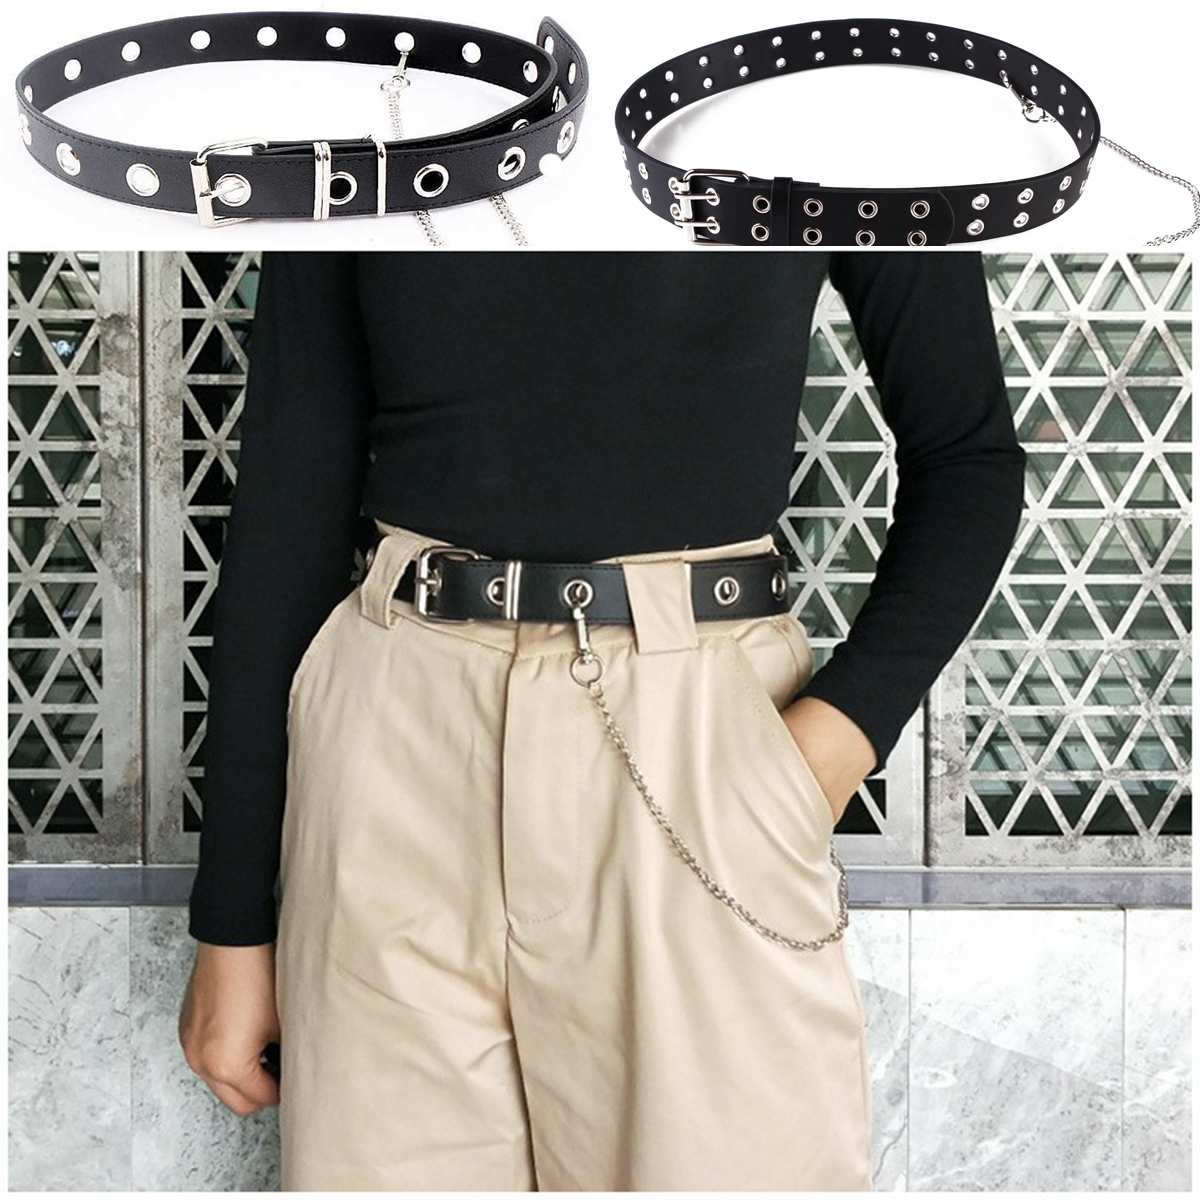 PU Leather Studded Punk Rivet Waist Strap Metel Waistband Buckle Belt W/ Chain